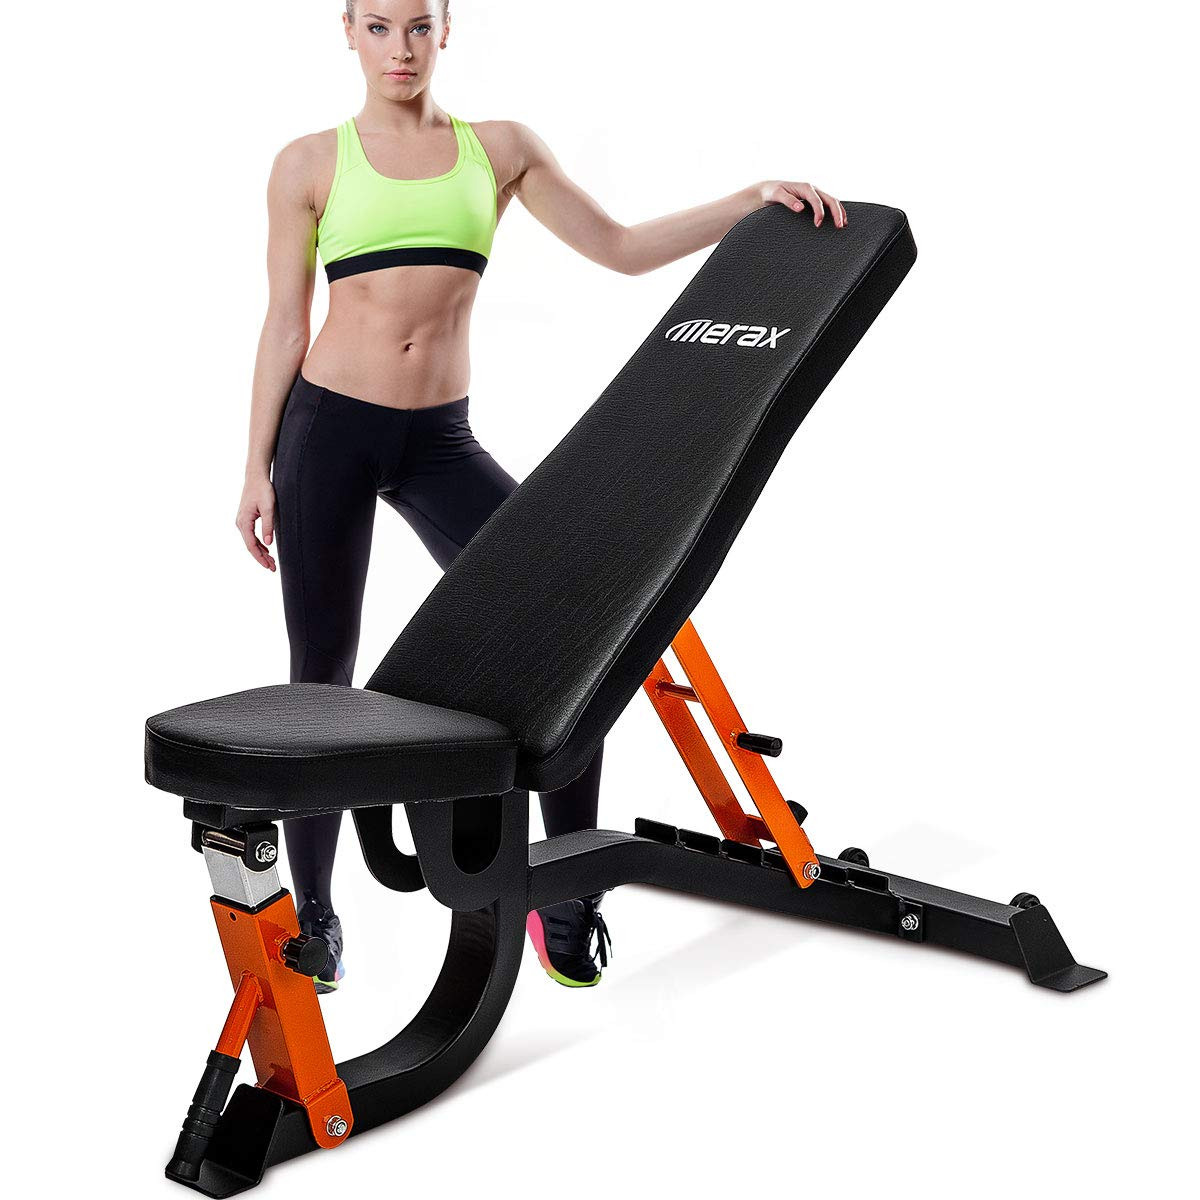 Merax Adjustable Weight Bench - 6 Position Incline Decline Utility Bench with High Density Foam Padding for Home Gym Strength Training [600 LBS Weight Capacity] (Black.)